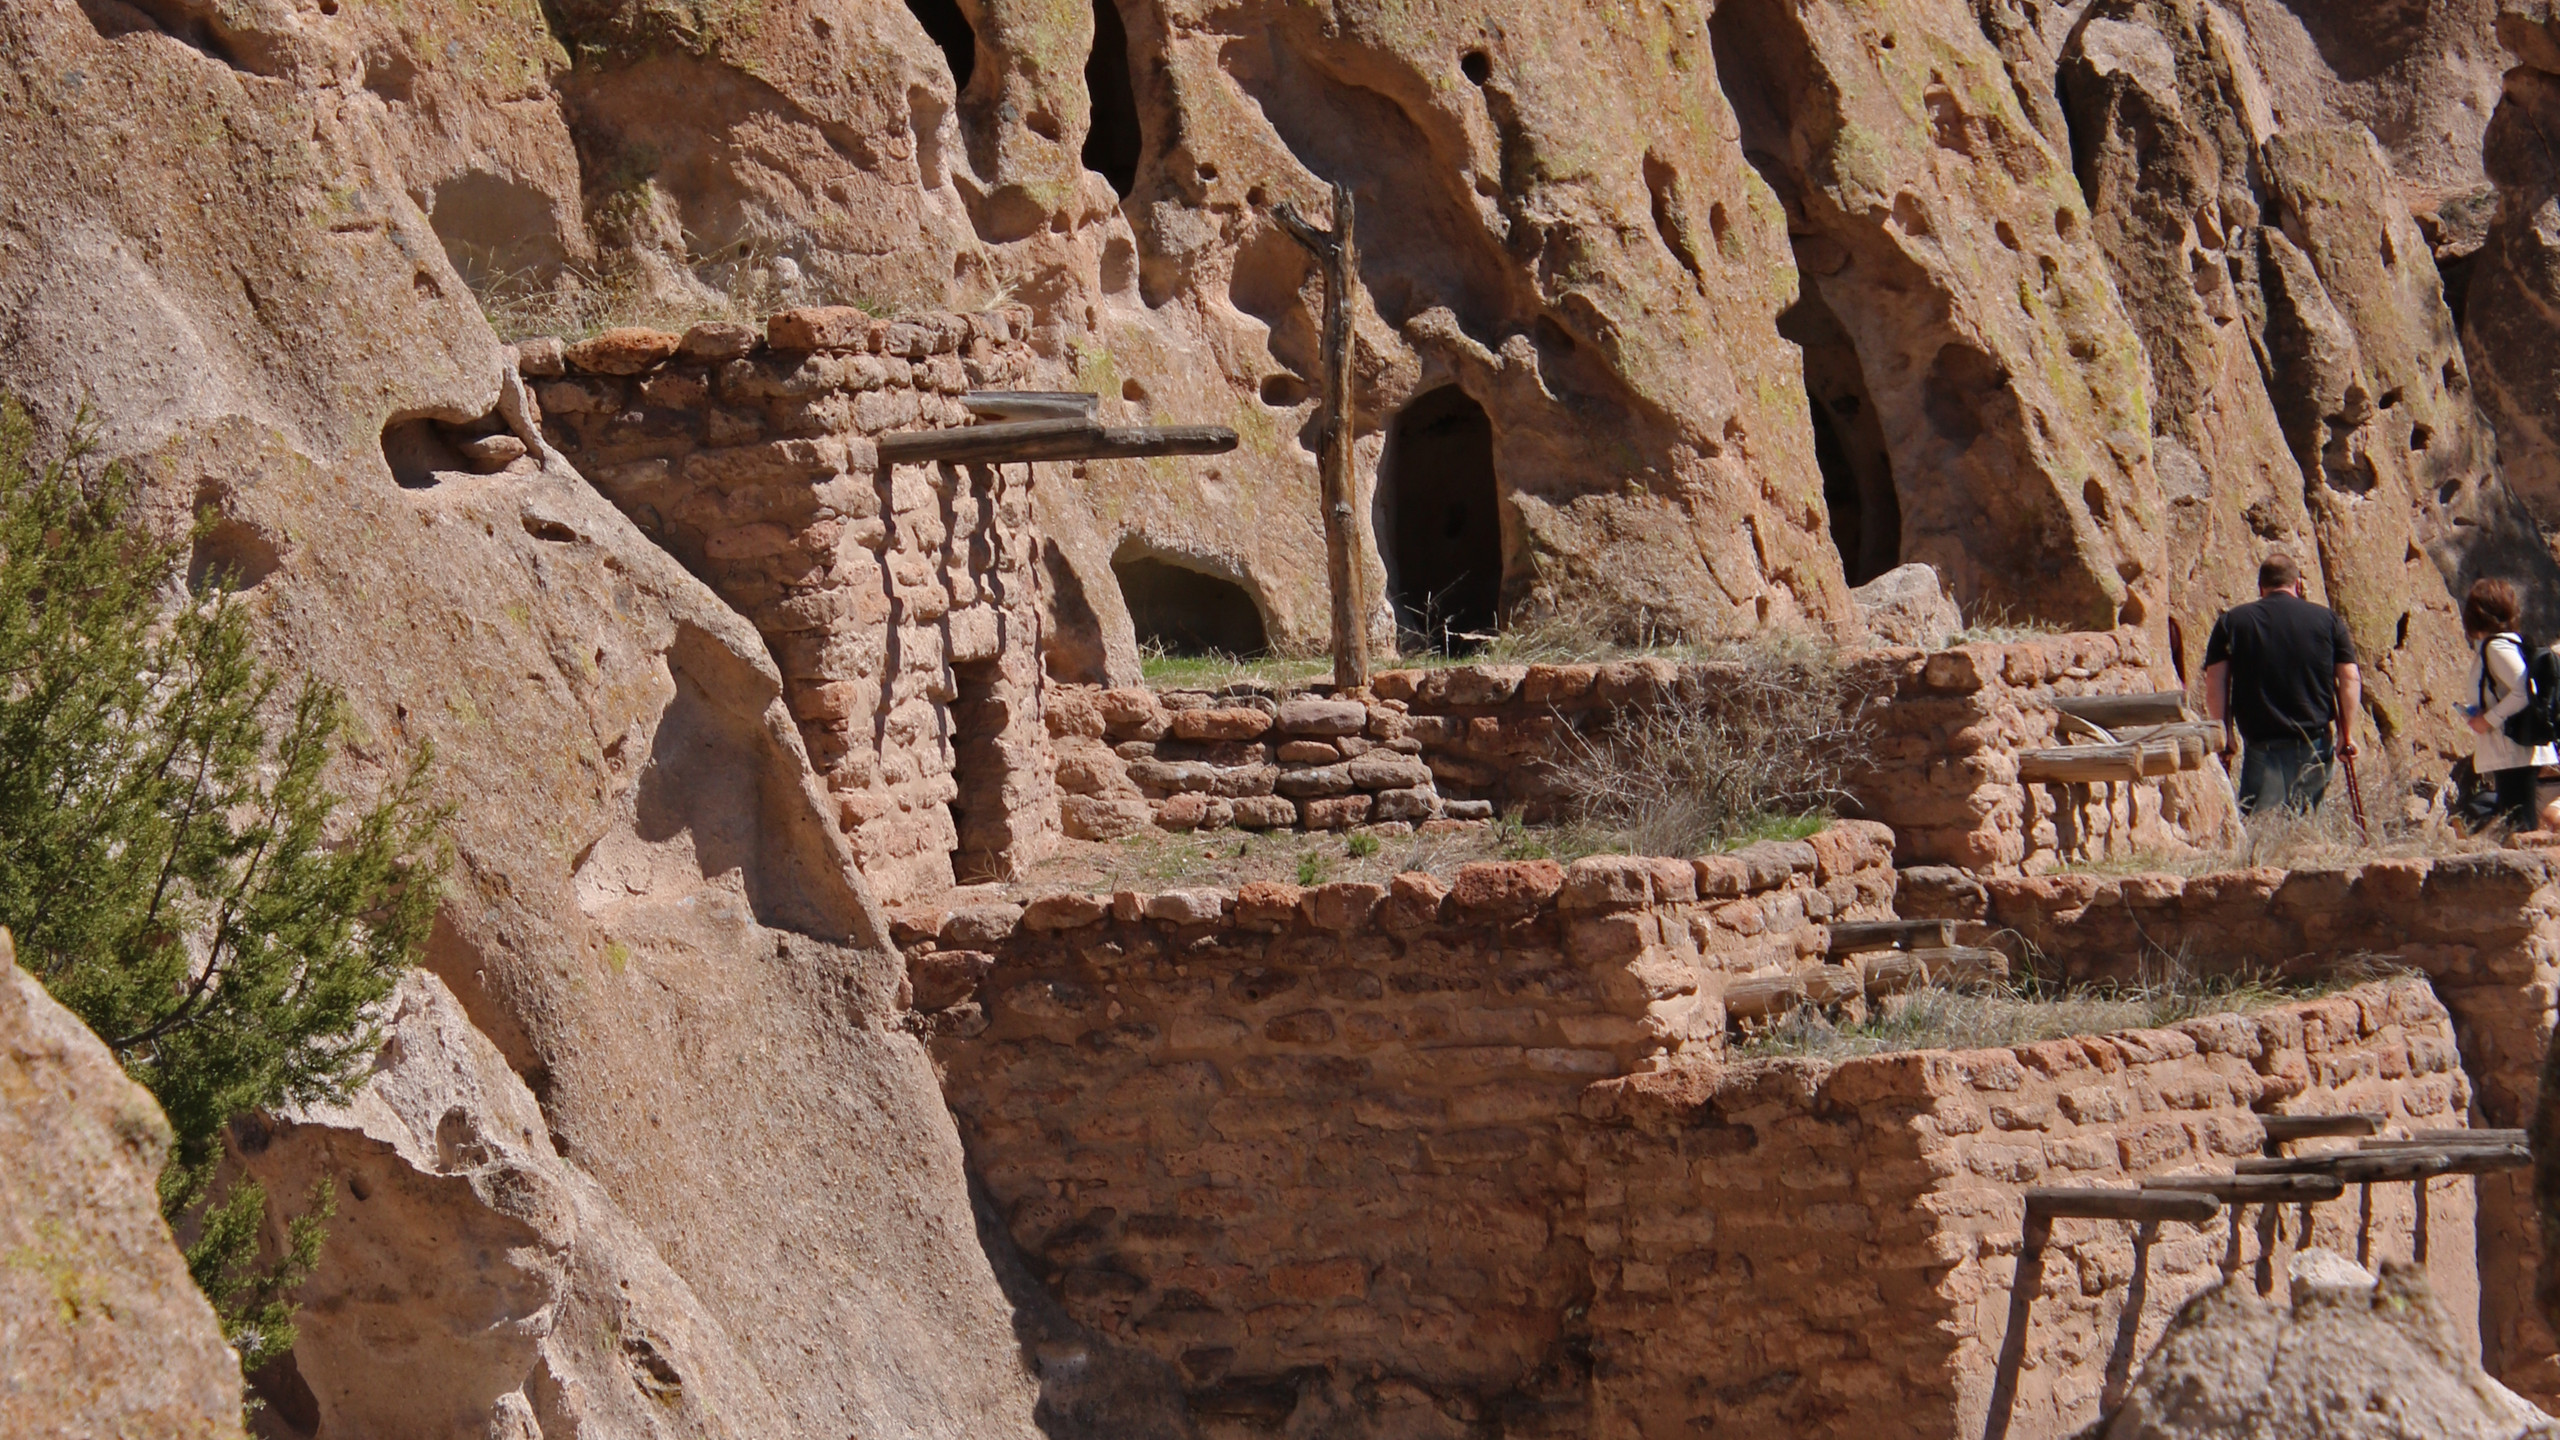 Pueblo home built into canyon at Bandelier National Monument in New Mexico